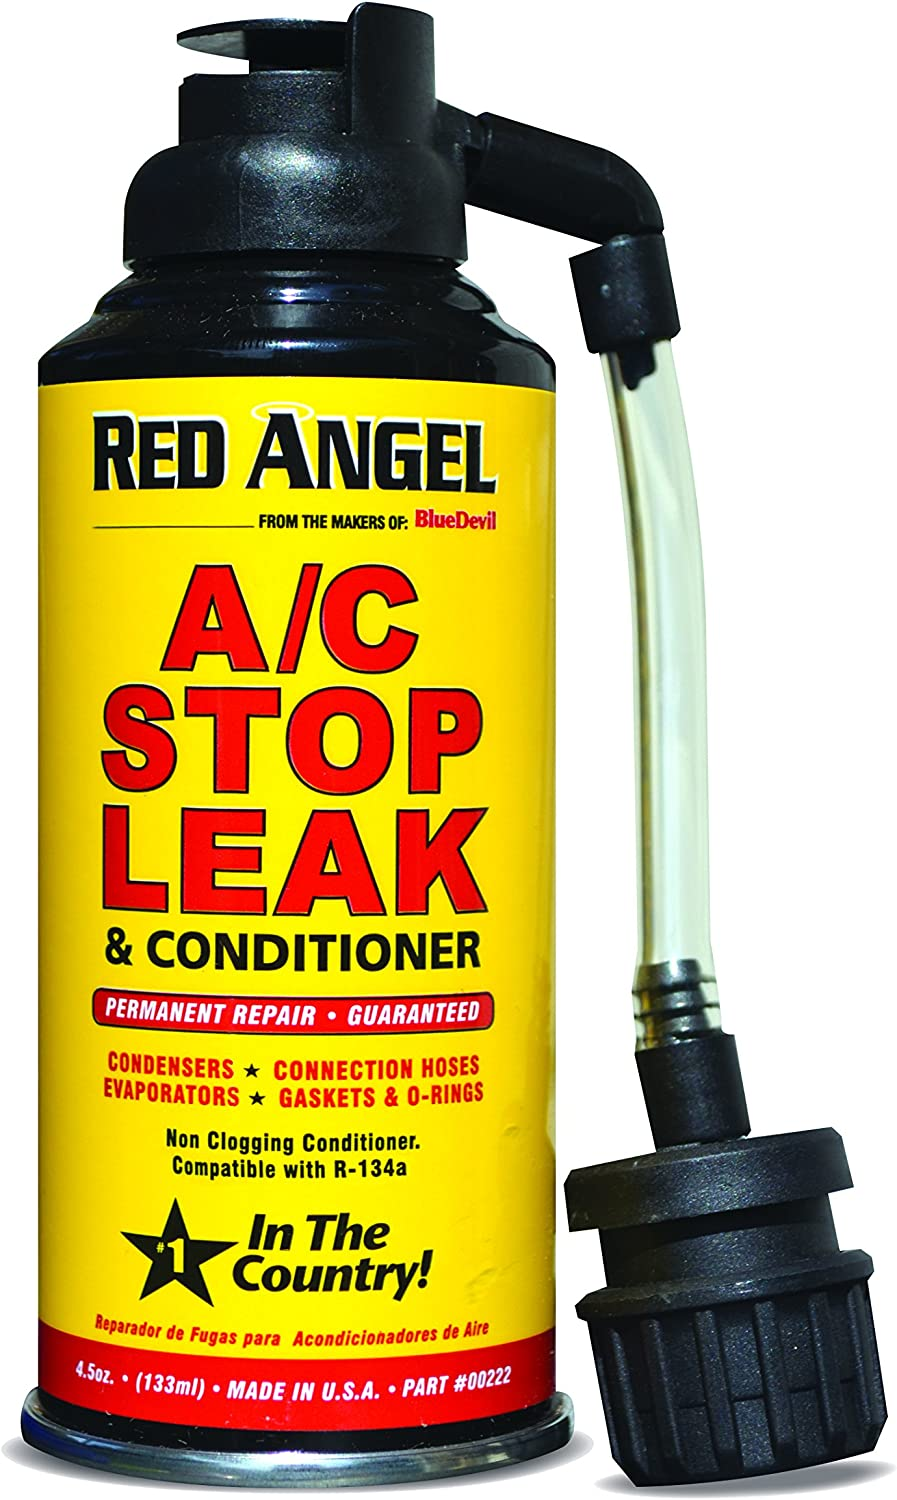 Red Angel A/C Stop Leak & Conditioner